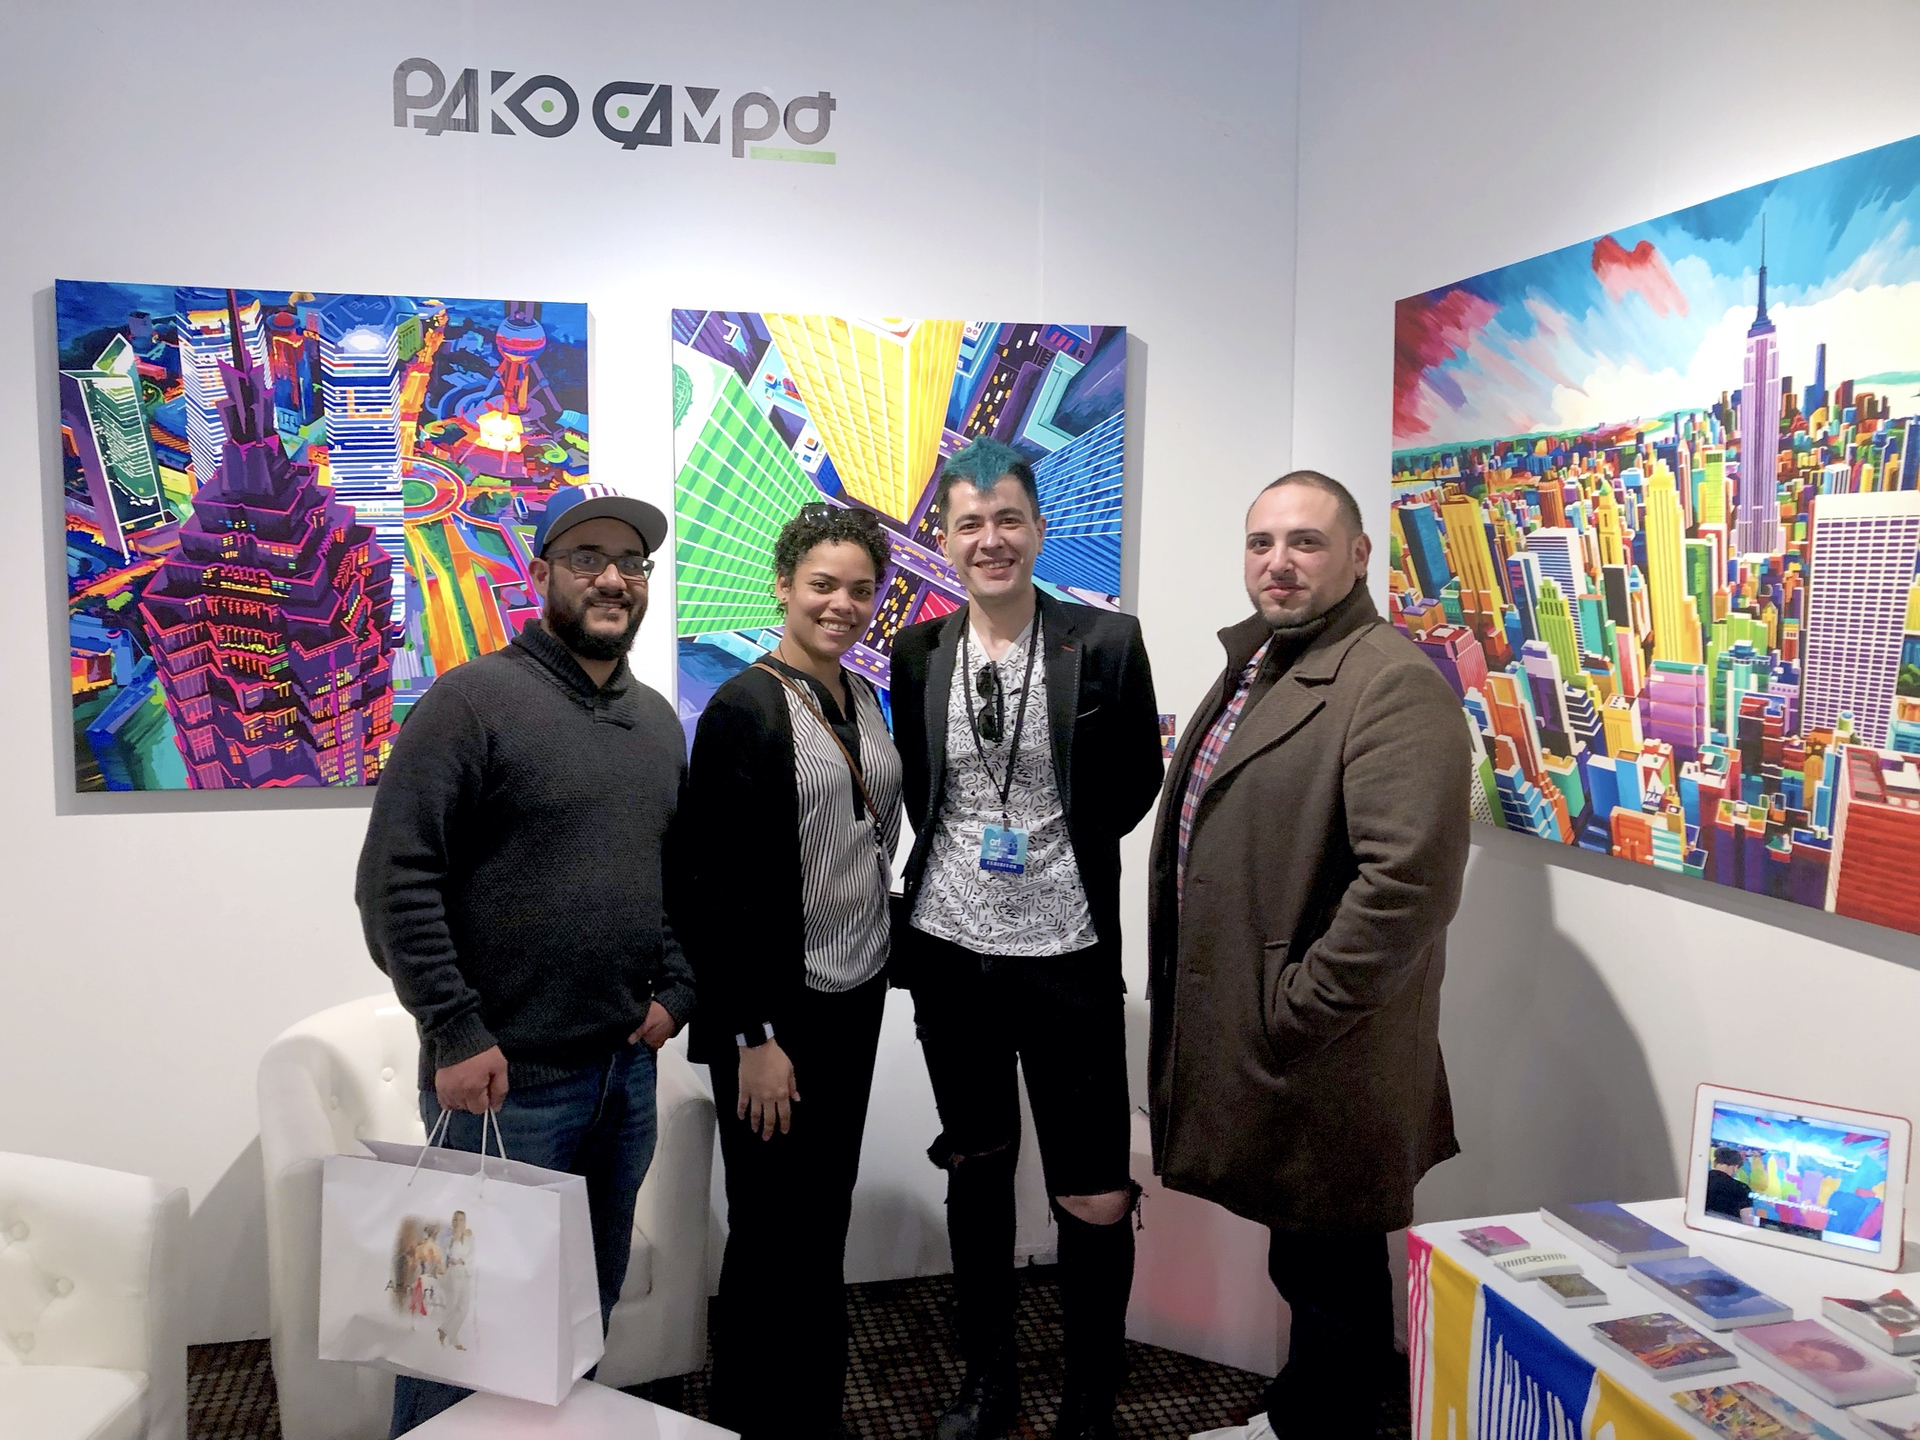 Trade day at Artexpo 2019 2 by Pako Campo